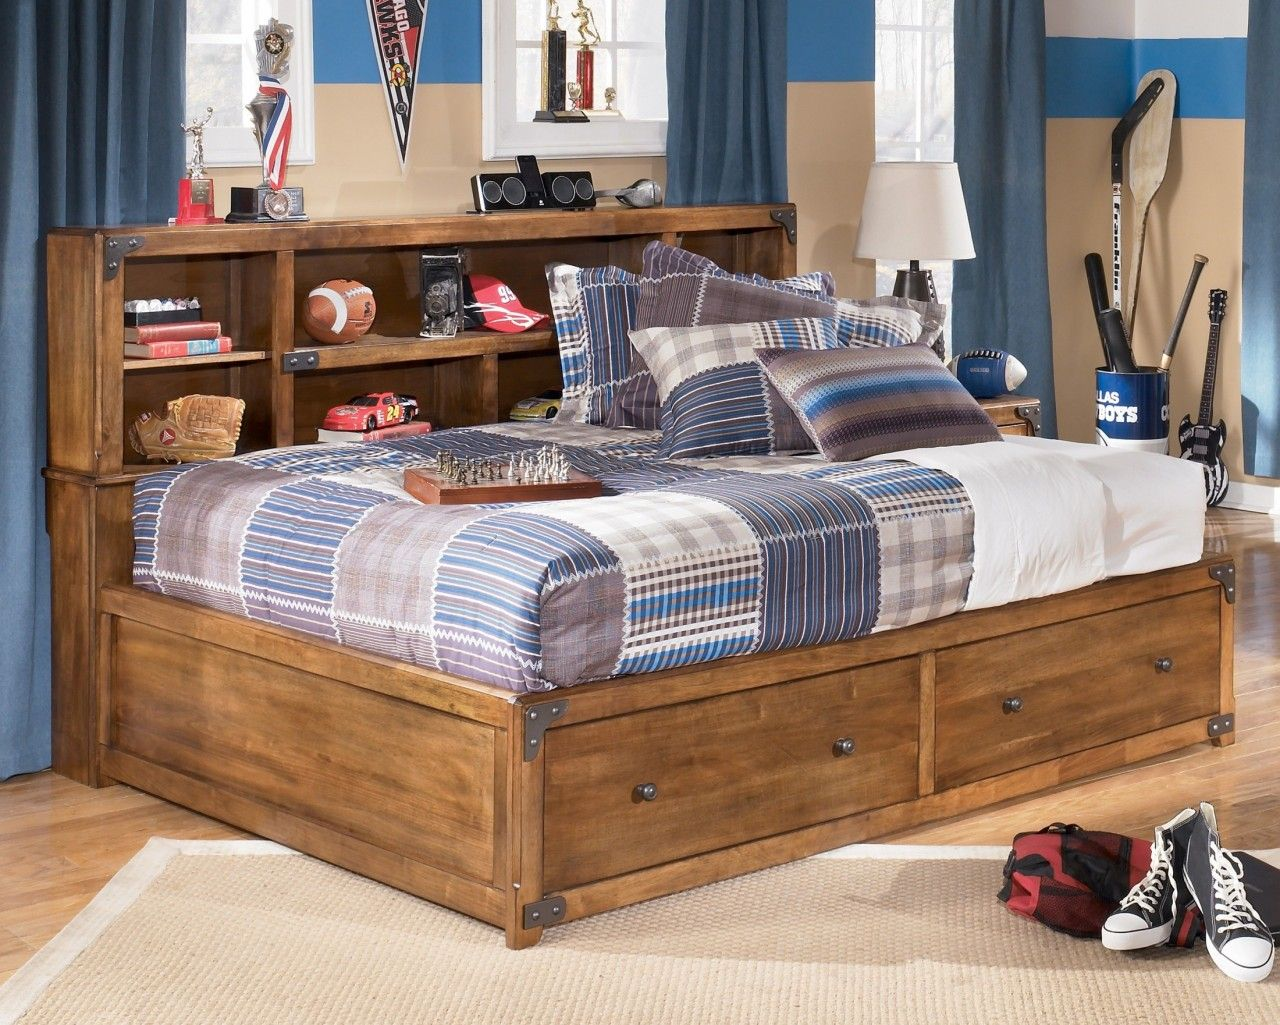 Small bedroom for boys with rustic wooden storage drawers platform